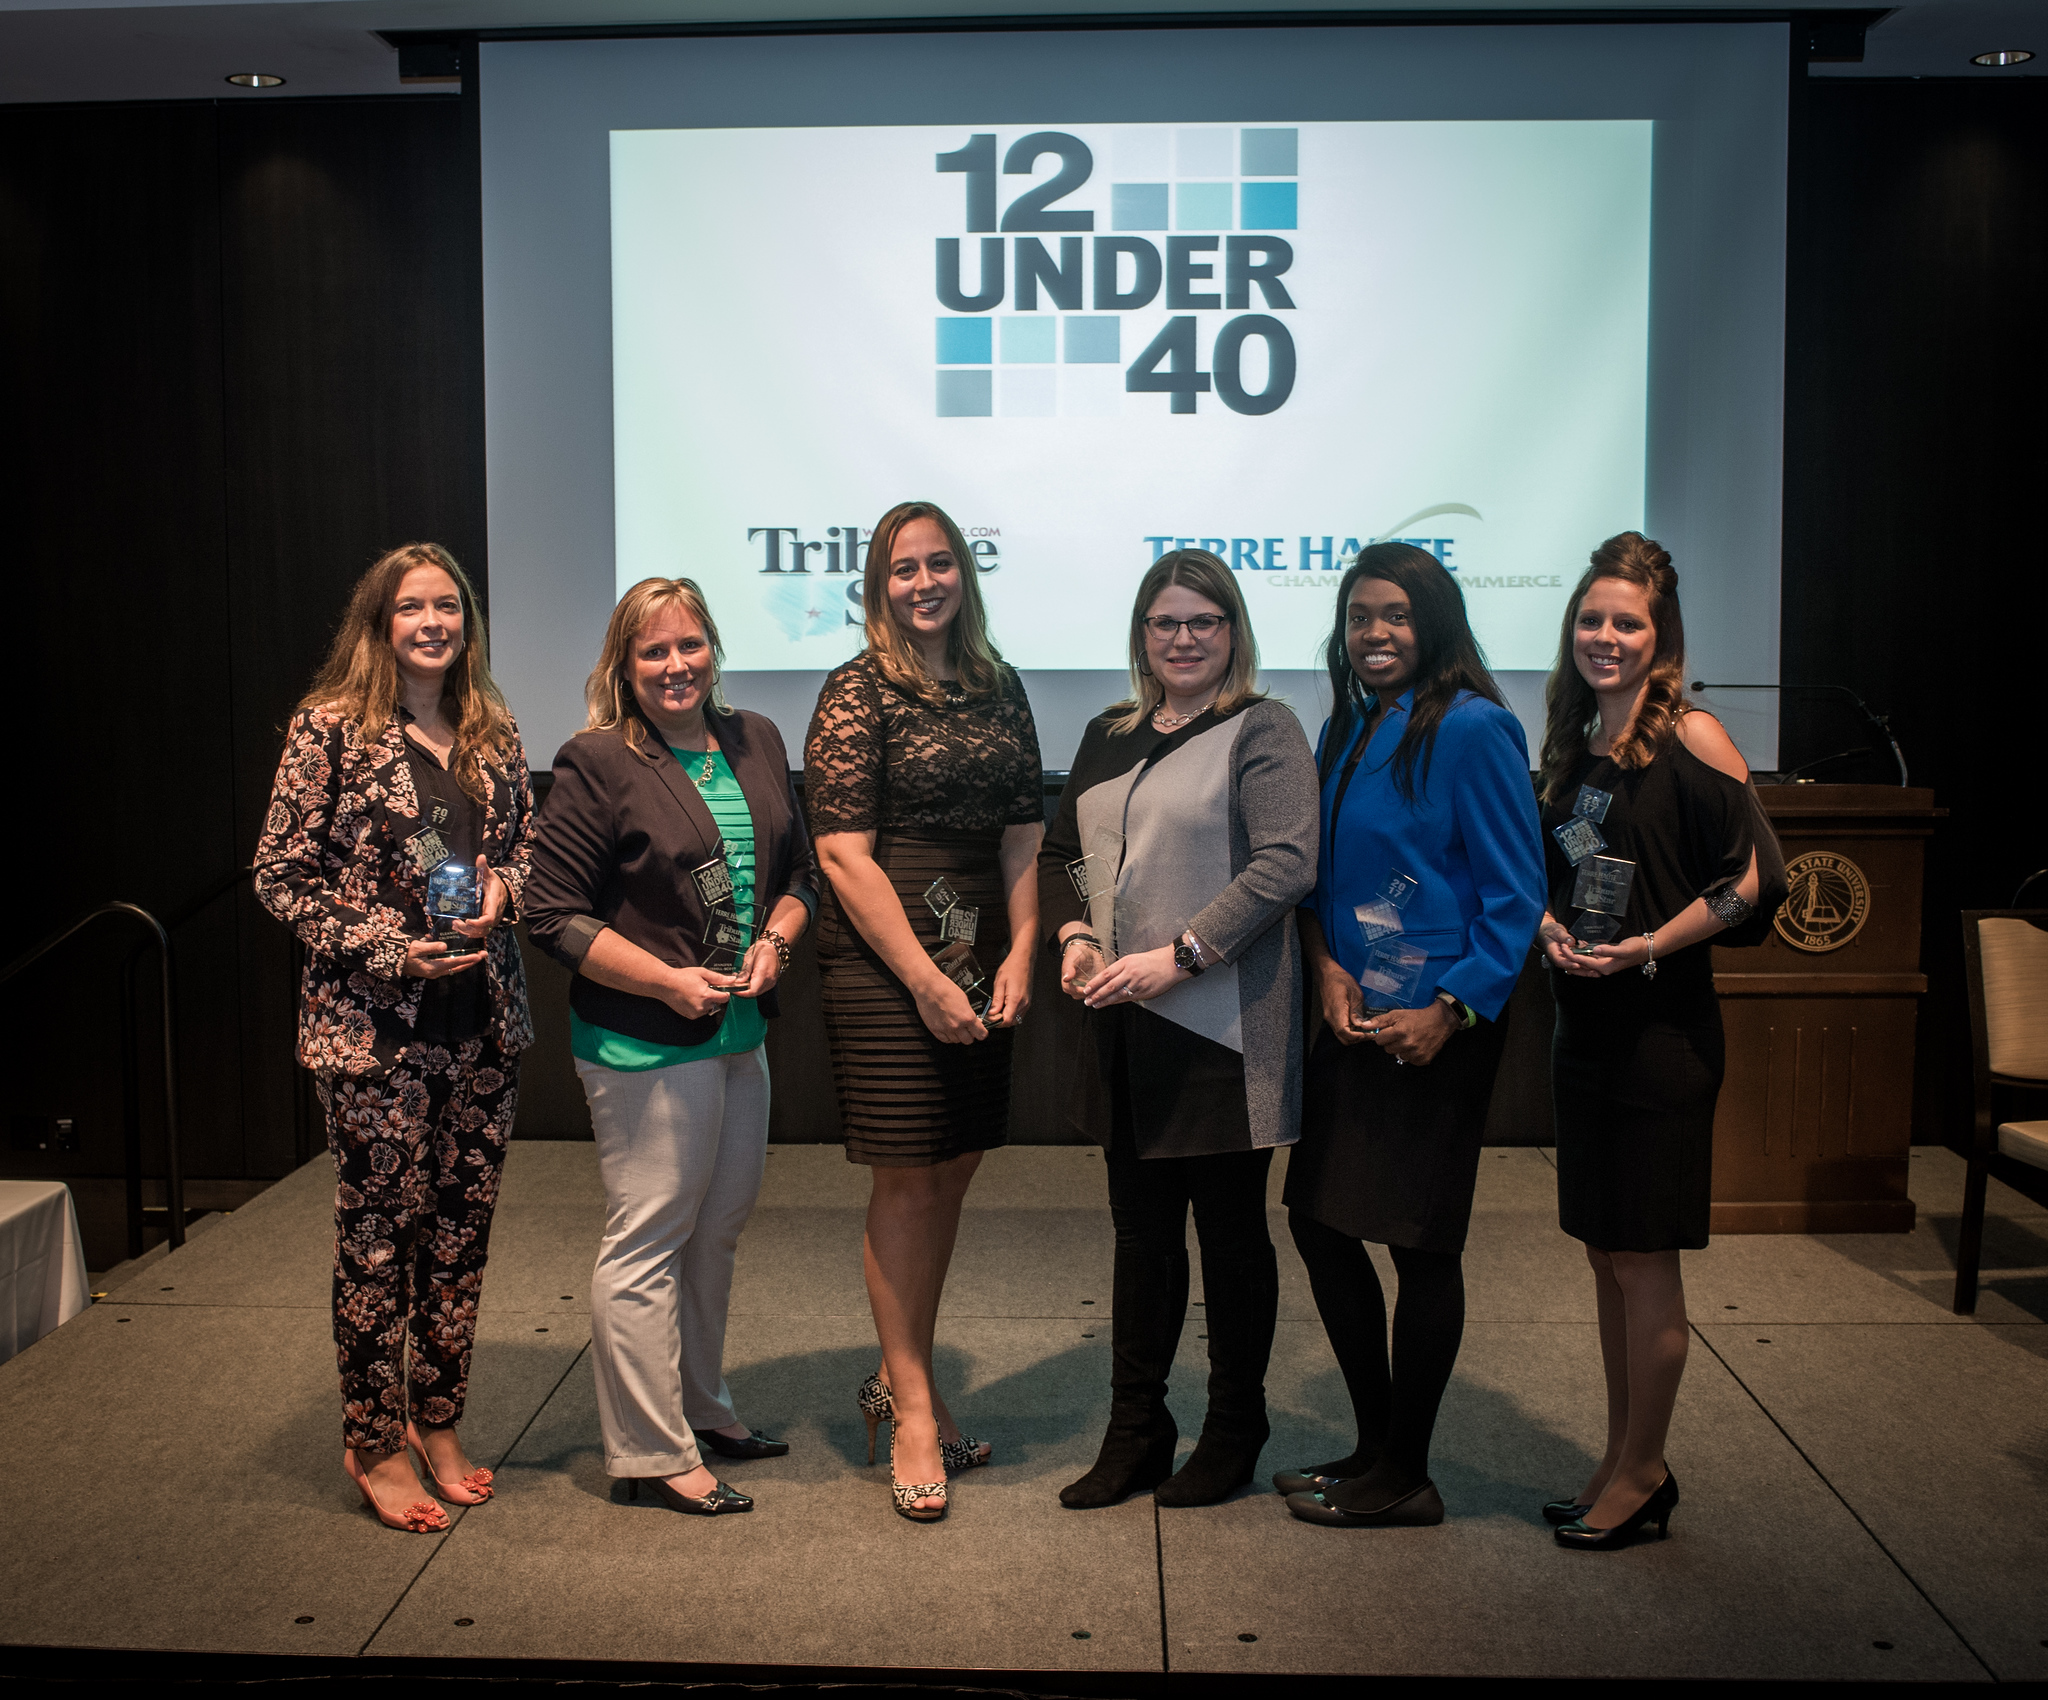 Seven State alumni among '12 Under 40' honorees